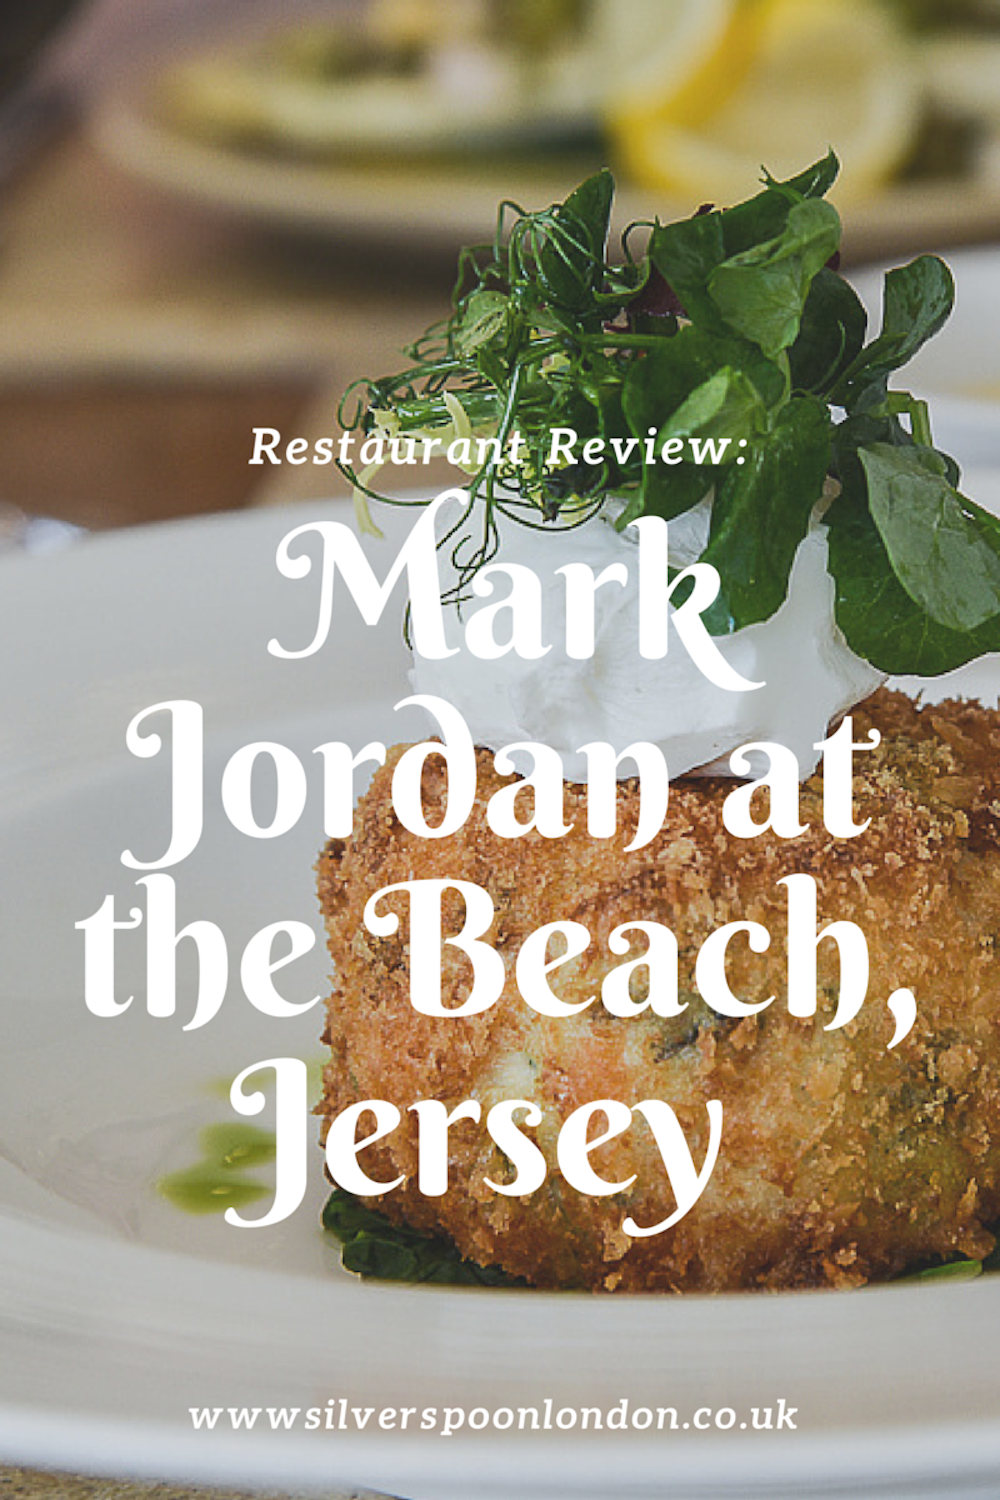 Restaurant review: Mark Jordan at the Beach, Jersey